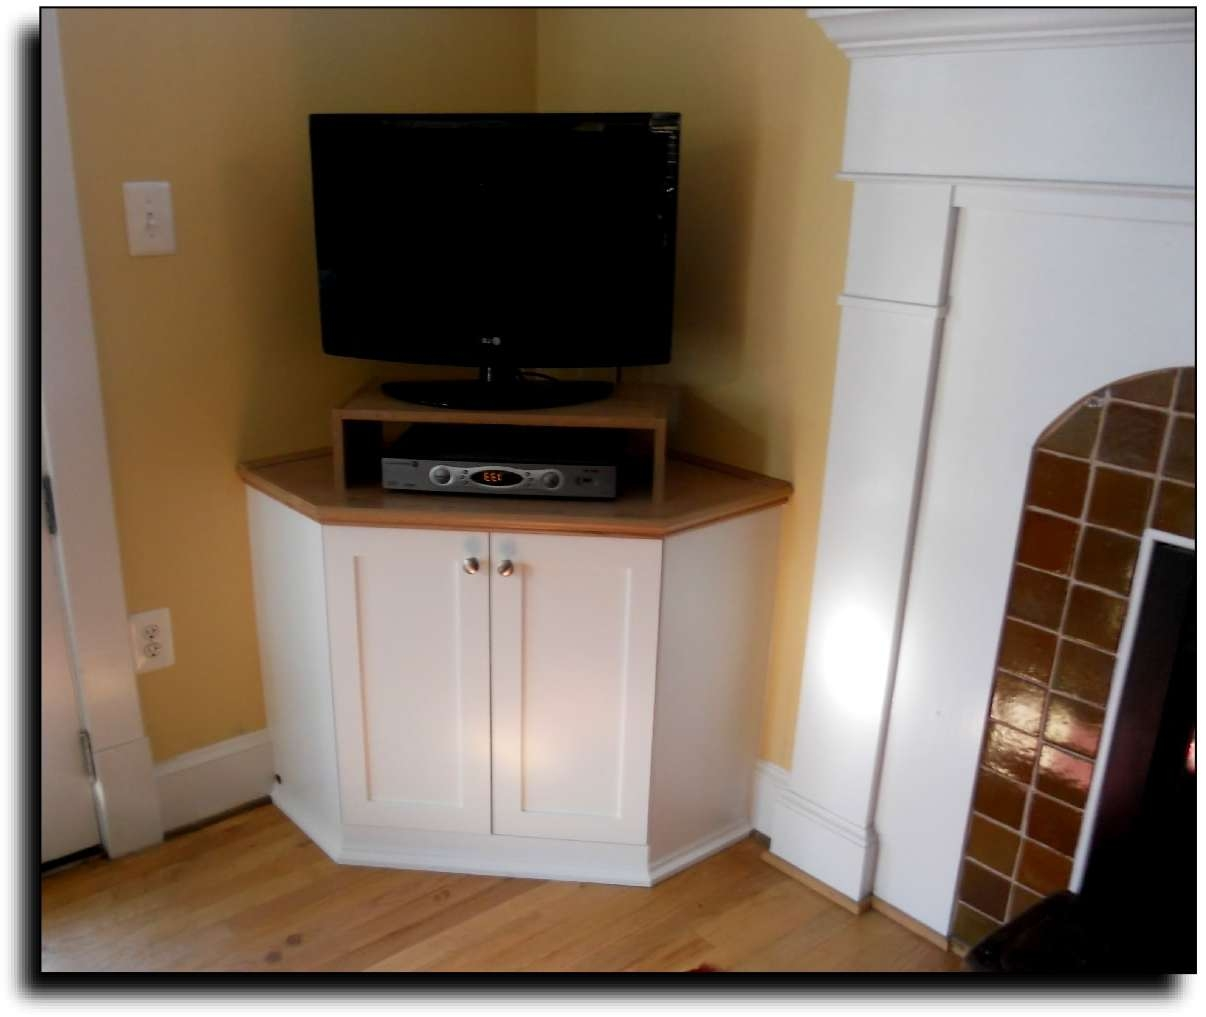 Tall Corner Tv Stand: Designs And Images | Homesfeed Pertaining To Tall Tv Cabinets Corner Unit (View 19 of 20)